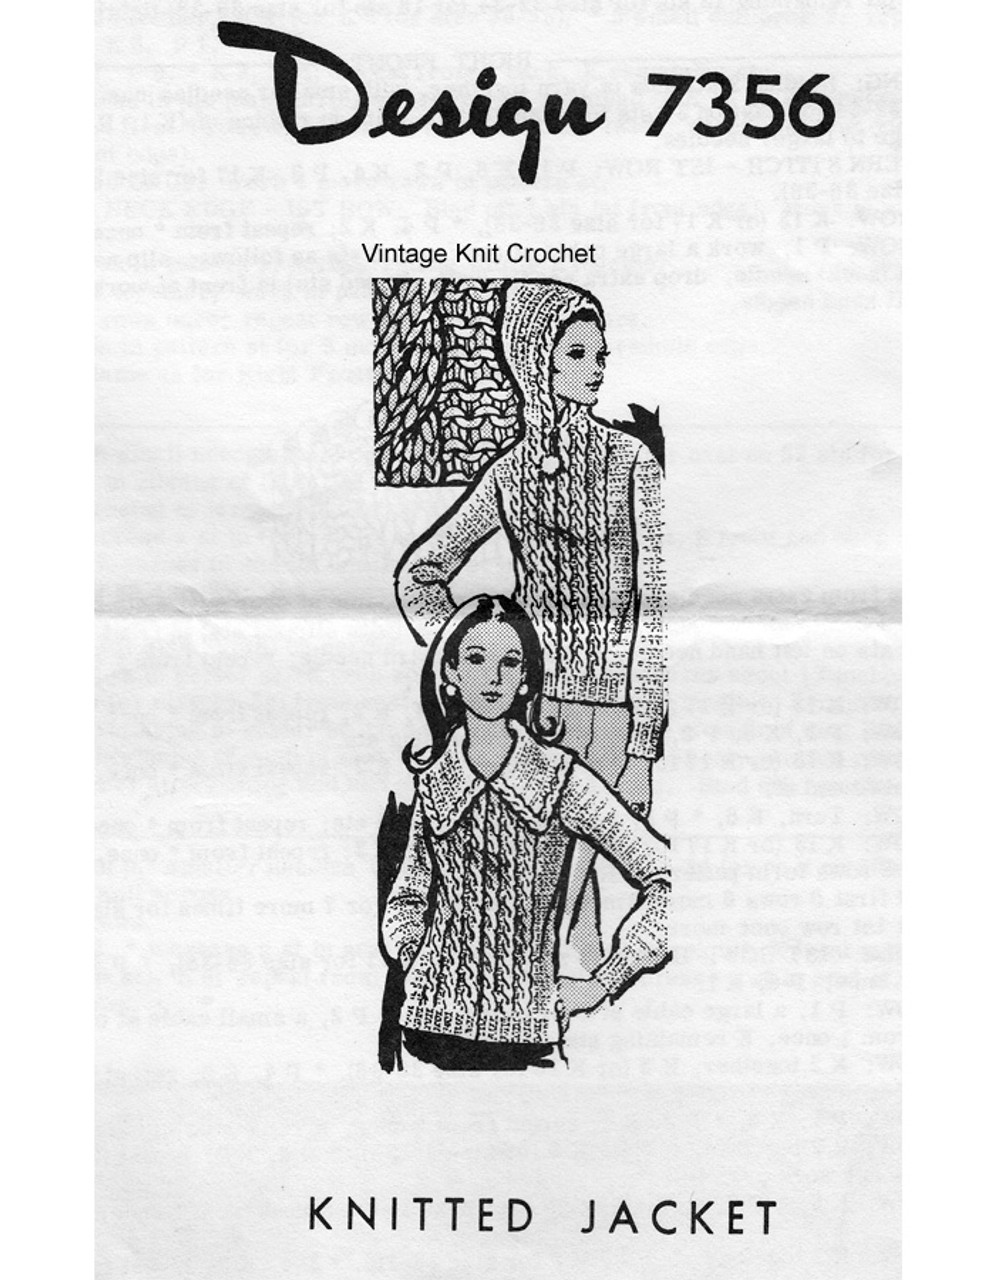 Knitted Hoodie Pattern, Cable Stitch, Mail Oder 7356